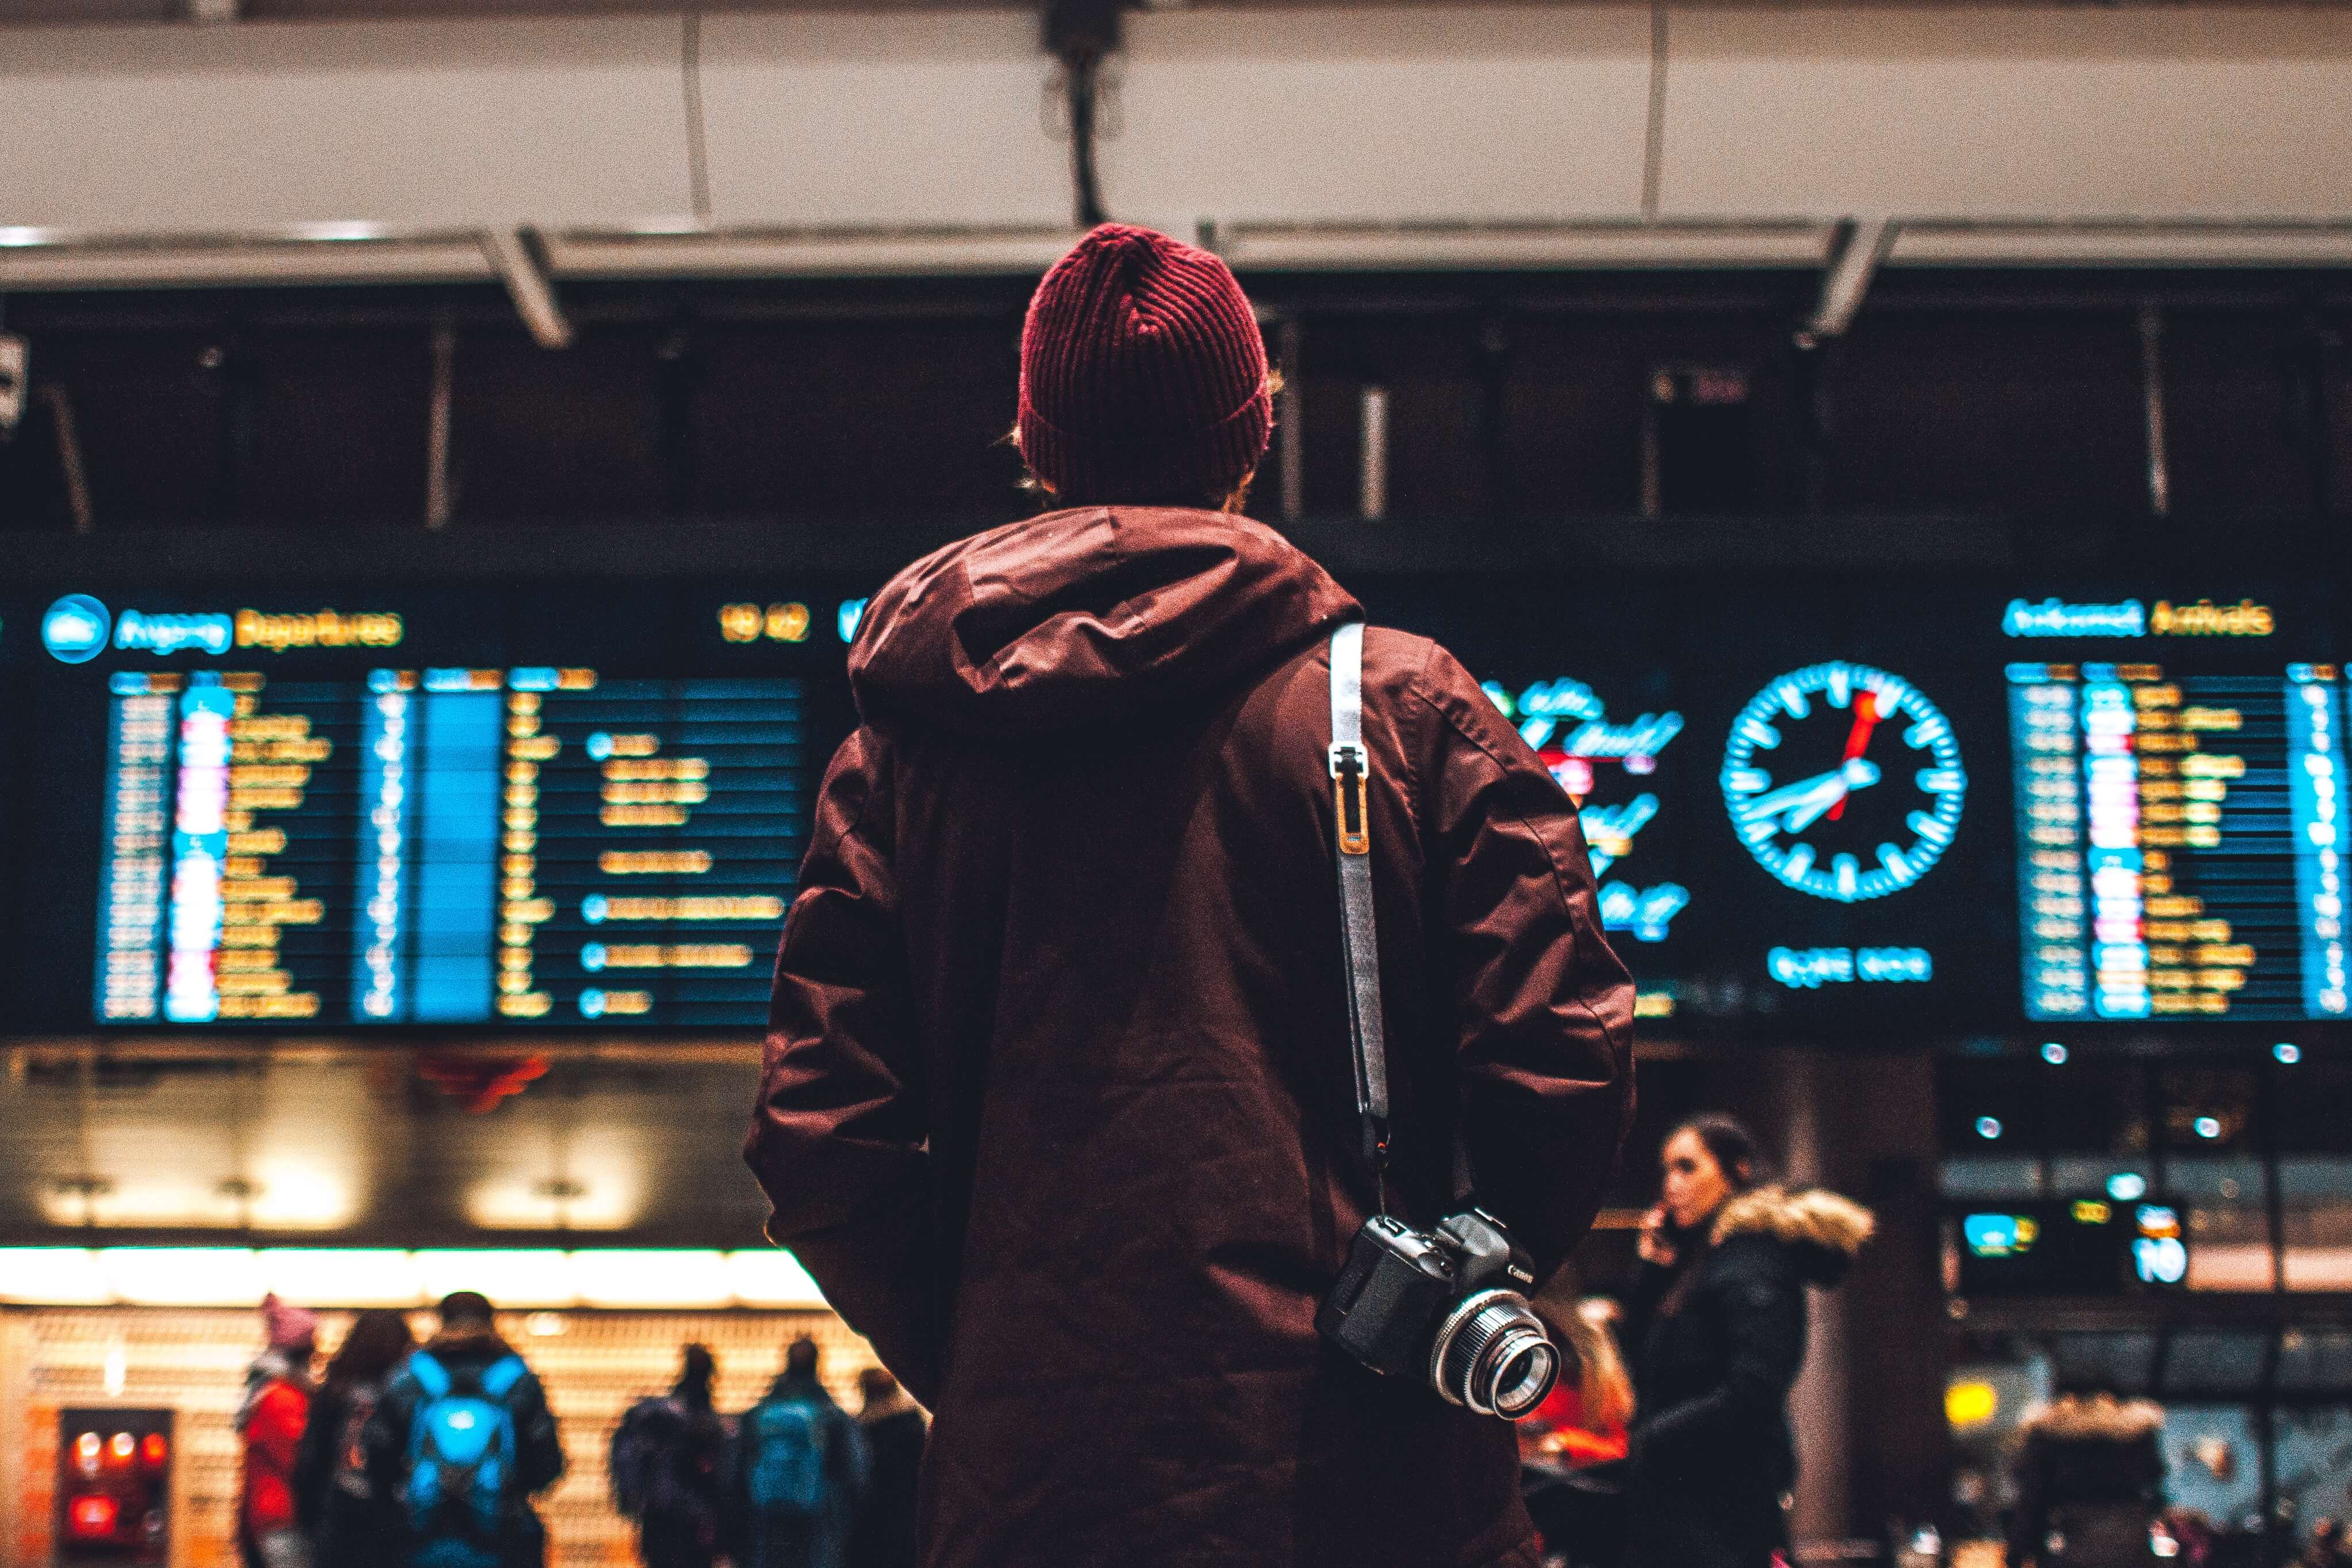 If you are new to traveling, knowing how to maximize your airline miles can be confusing. Which airlines give you the best travel perks? Click the image to see how you can maximize your airline miles and travel perks like a pro! #airlinemiles #travelhacks #howtogetairlinemiles #cheapflights #howtouseairlinemiles